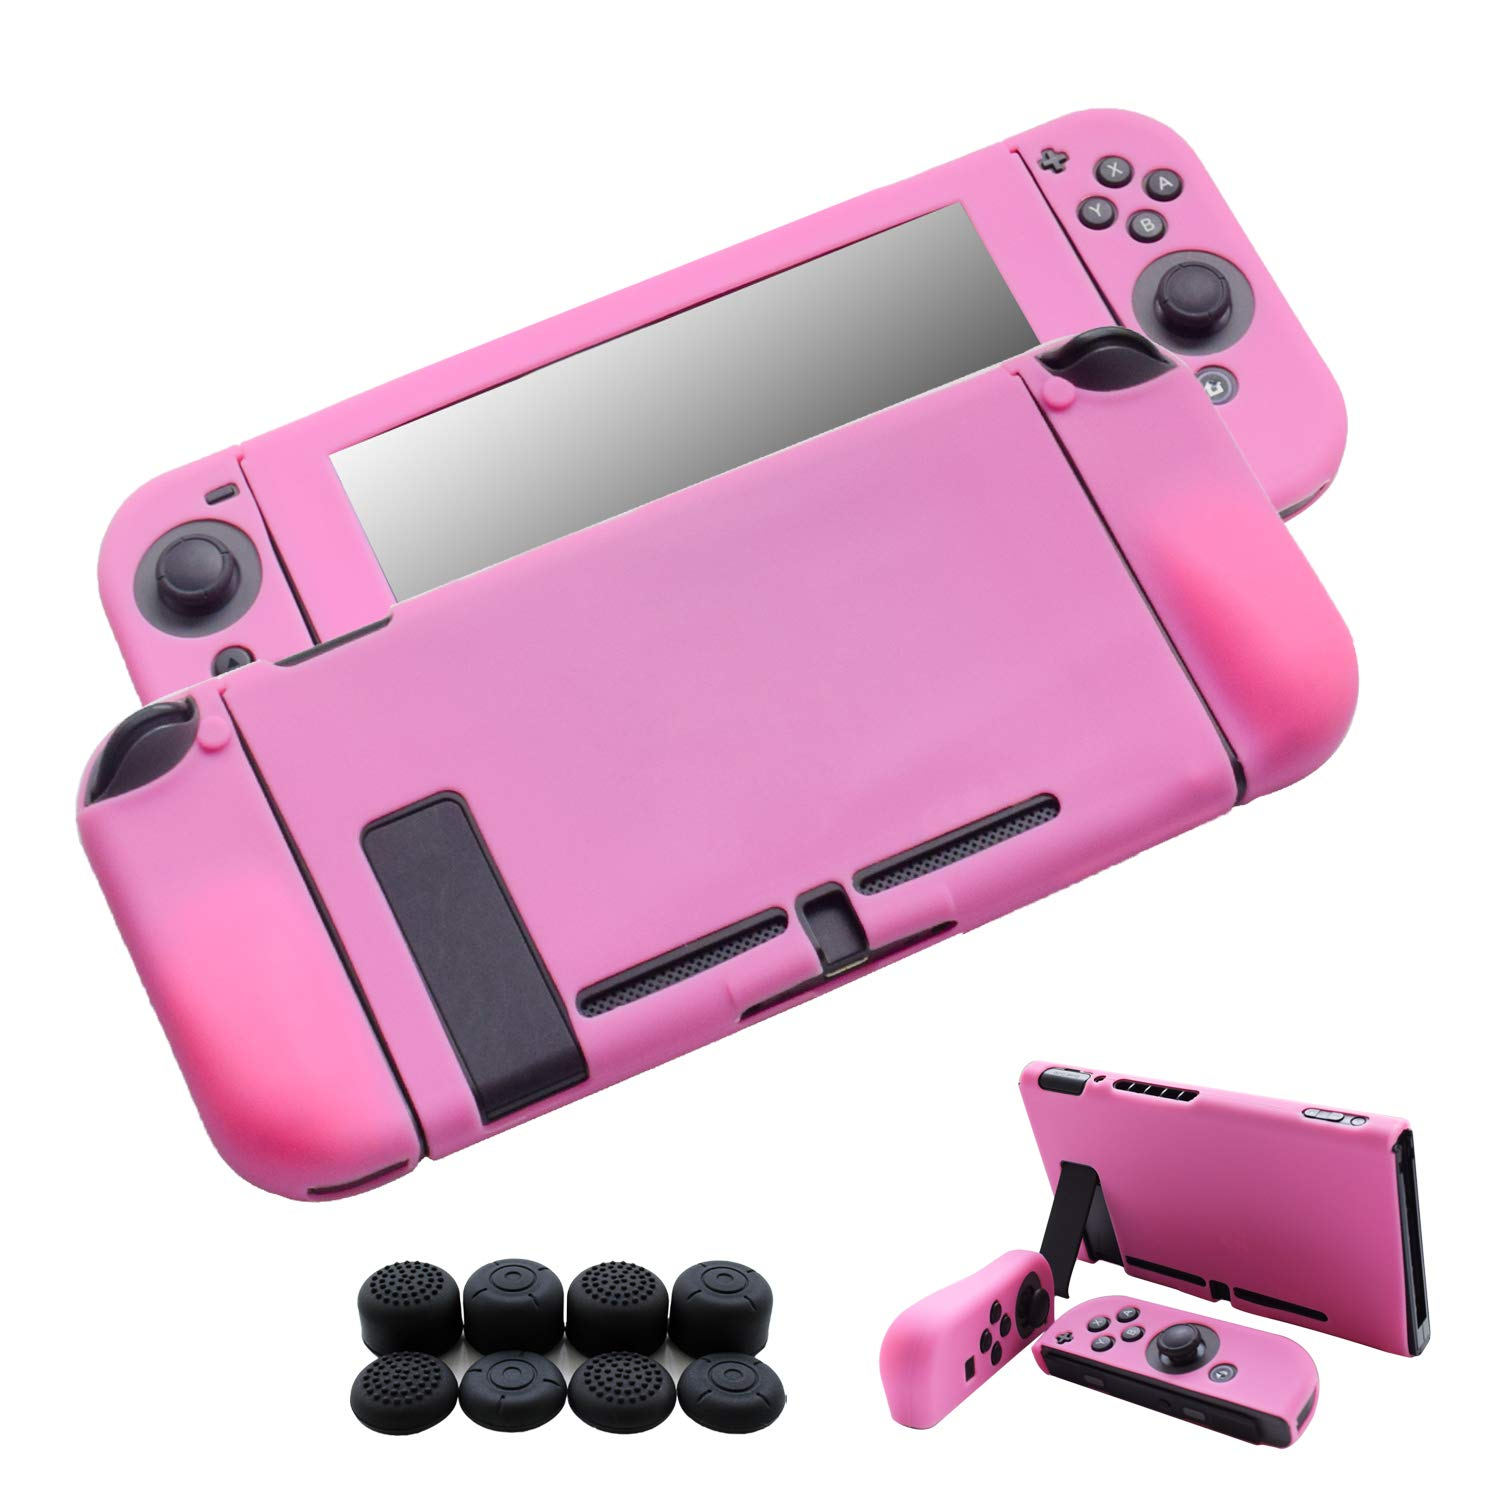 Hikfly Skin Compatible for Nintendo Switch 3pcs Silicone Cover Switch Grips Protector Gel Non-Slip Case Kits for Consoles and Joy-Con Controllers with ...